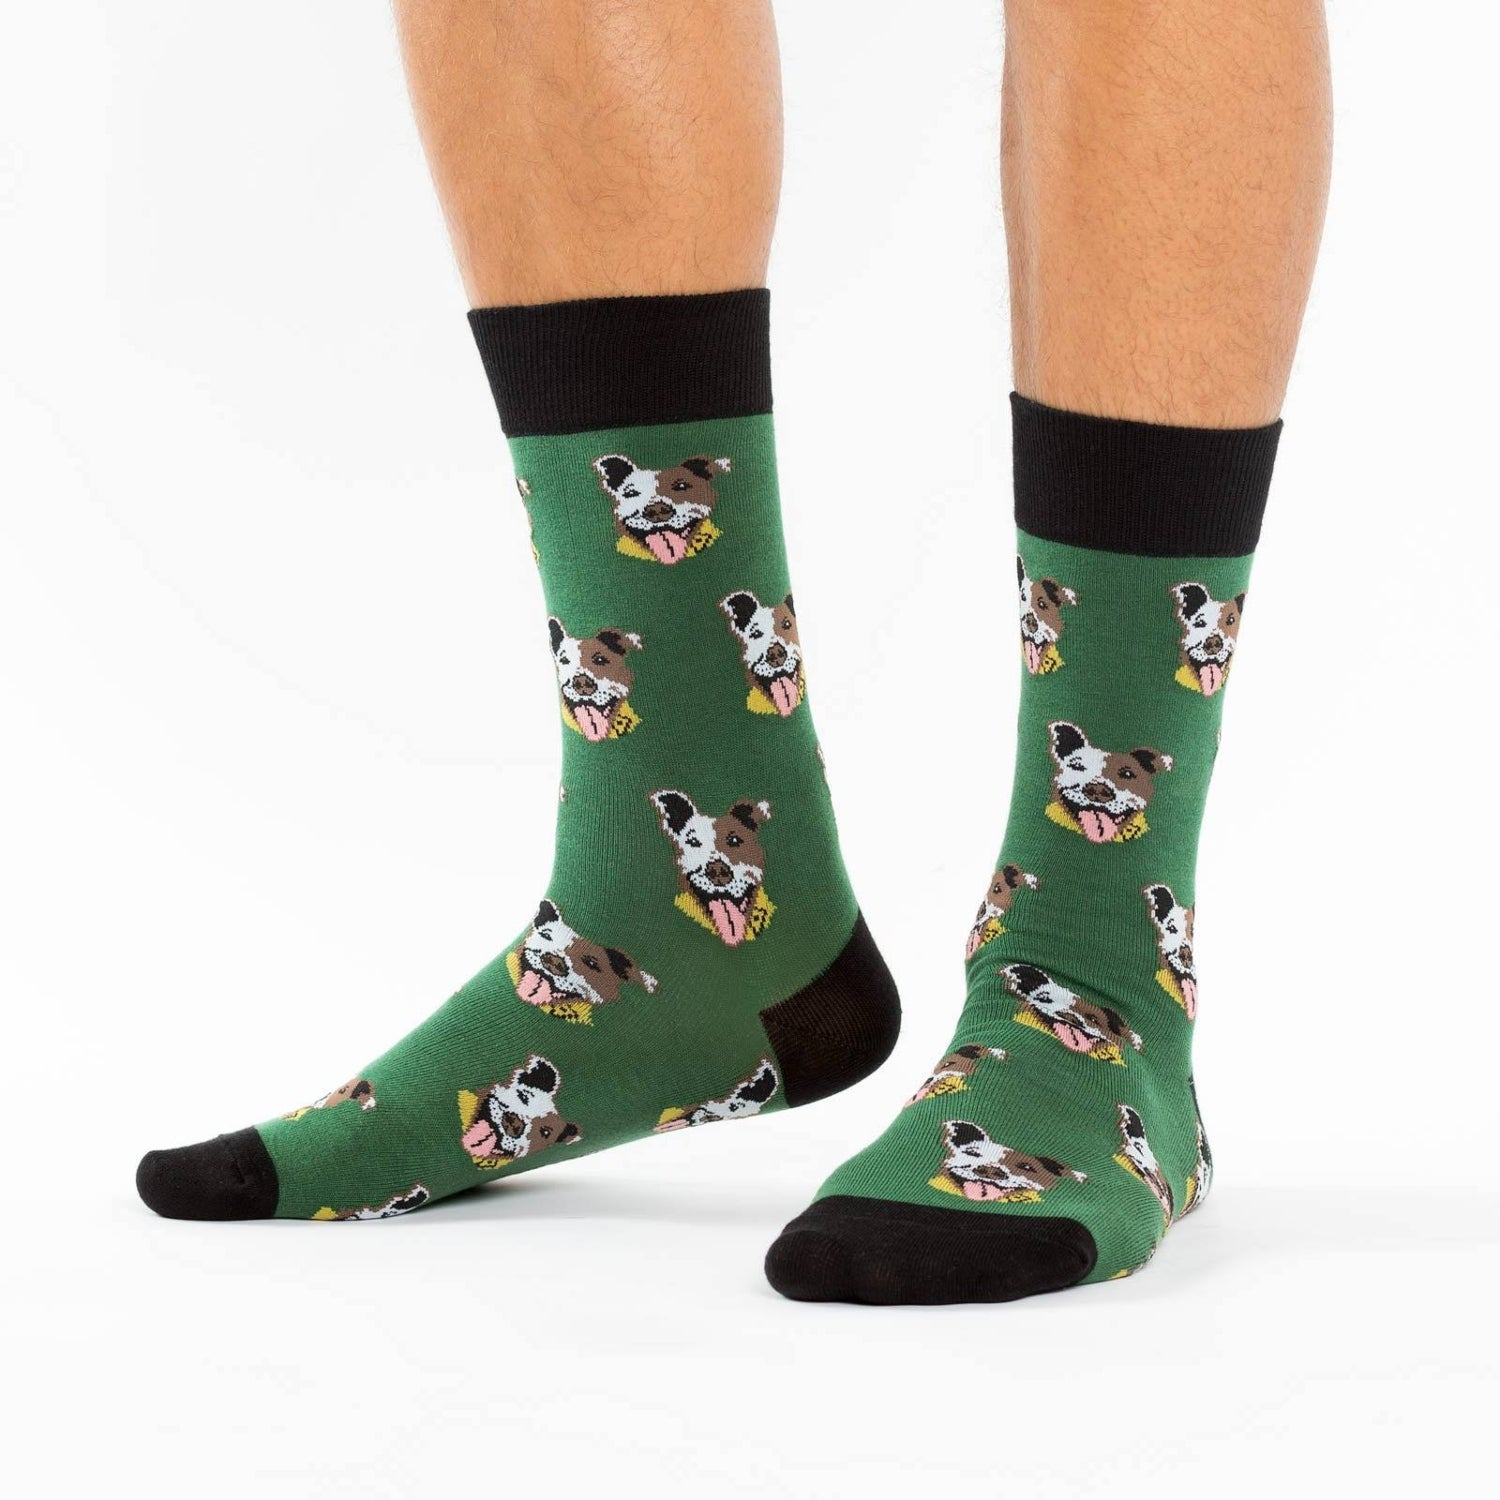 Calcetines hombre I The Socks Closet